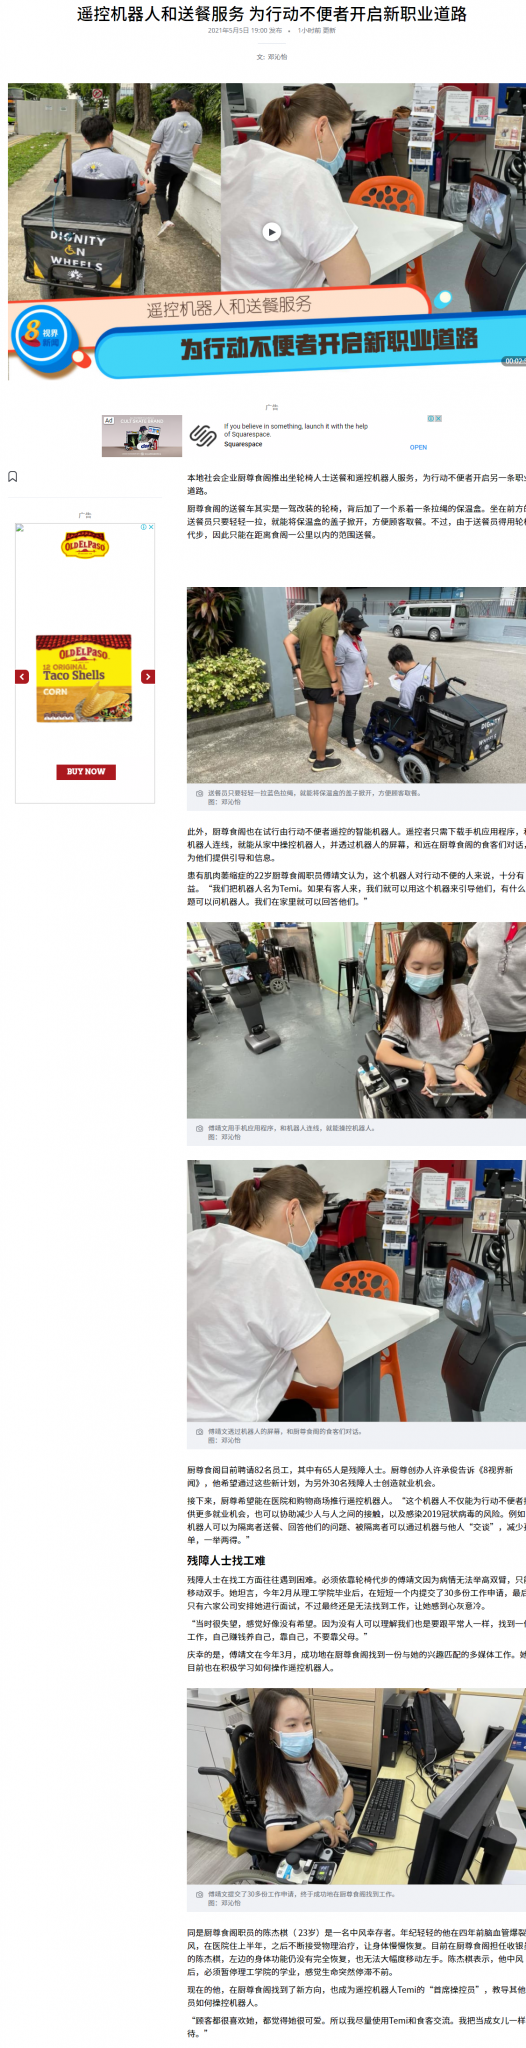 screencapture-8world-news-singapore-article-dignity-kitchen-launches-ai-robot-and-food-delivery-service-1468436-2021-05-06-13_08_46